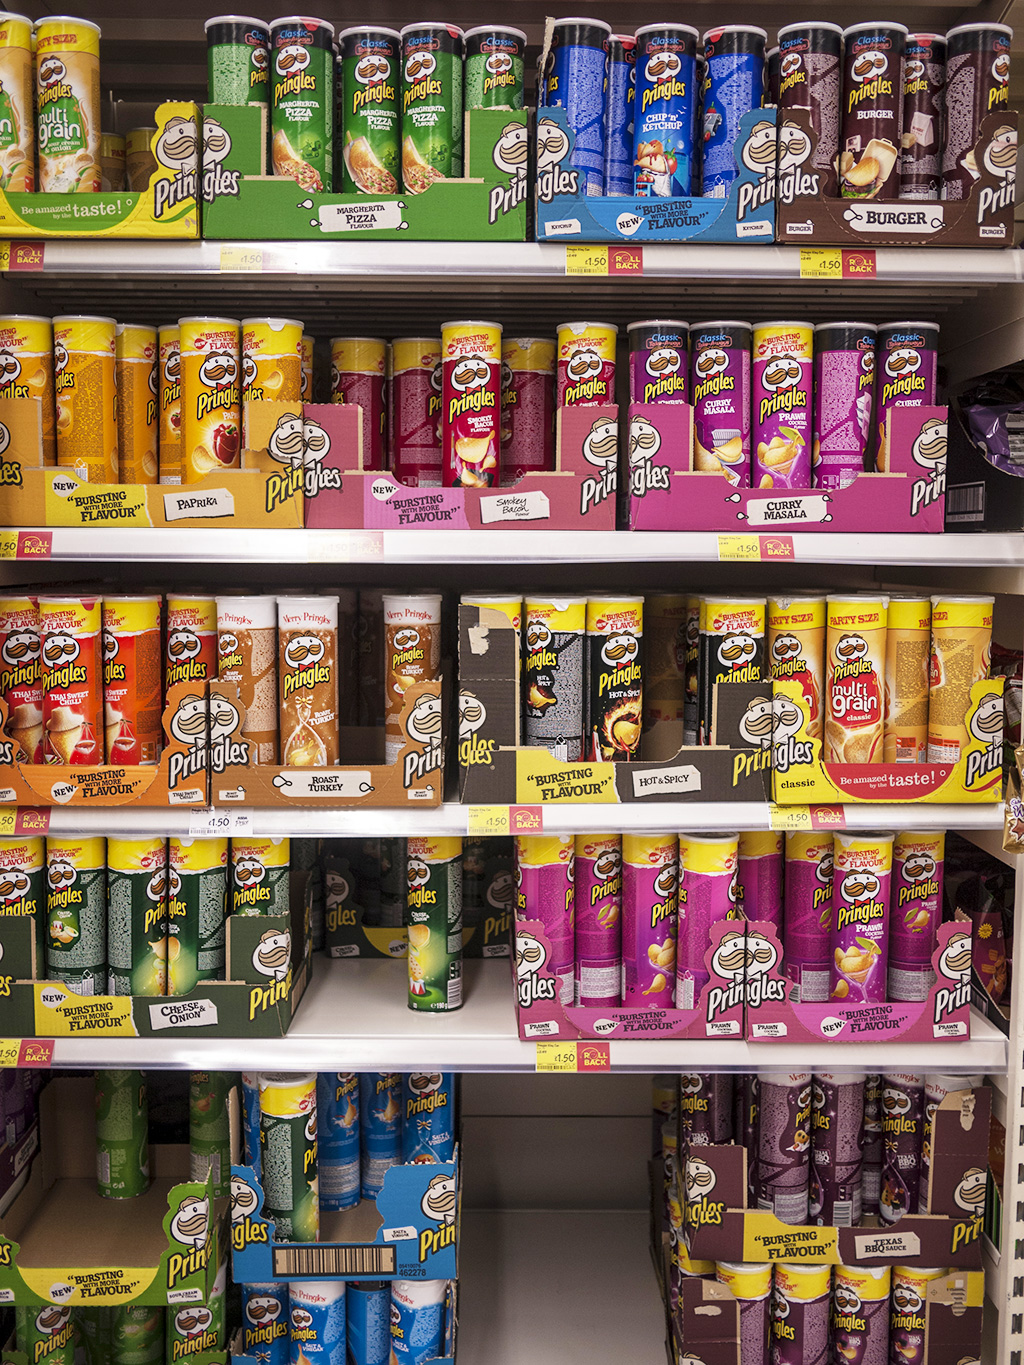 an entire shelf dedicated to Pringles flavors!